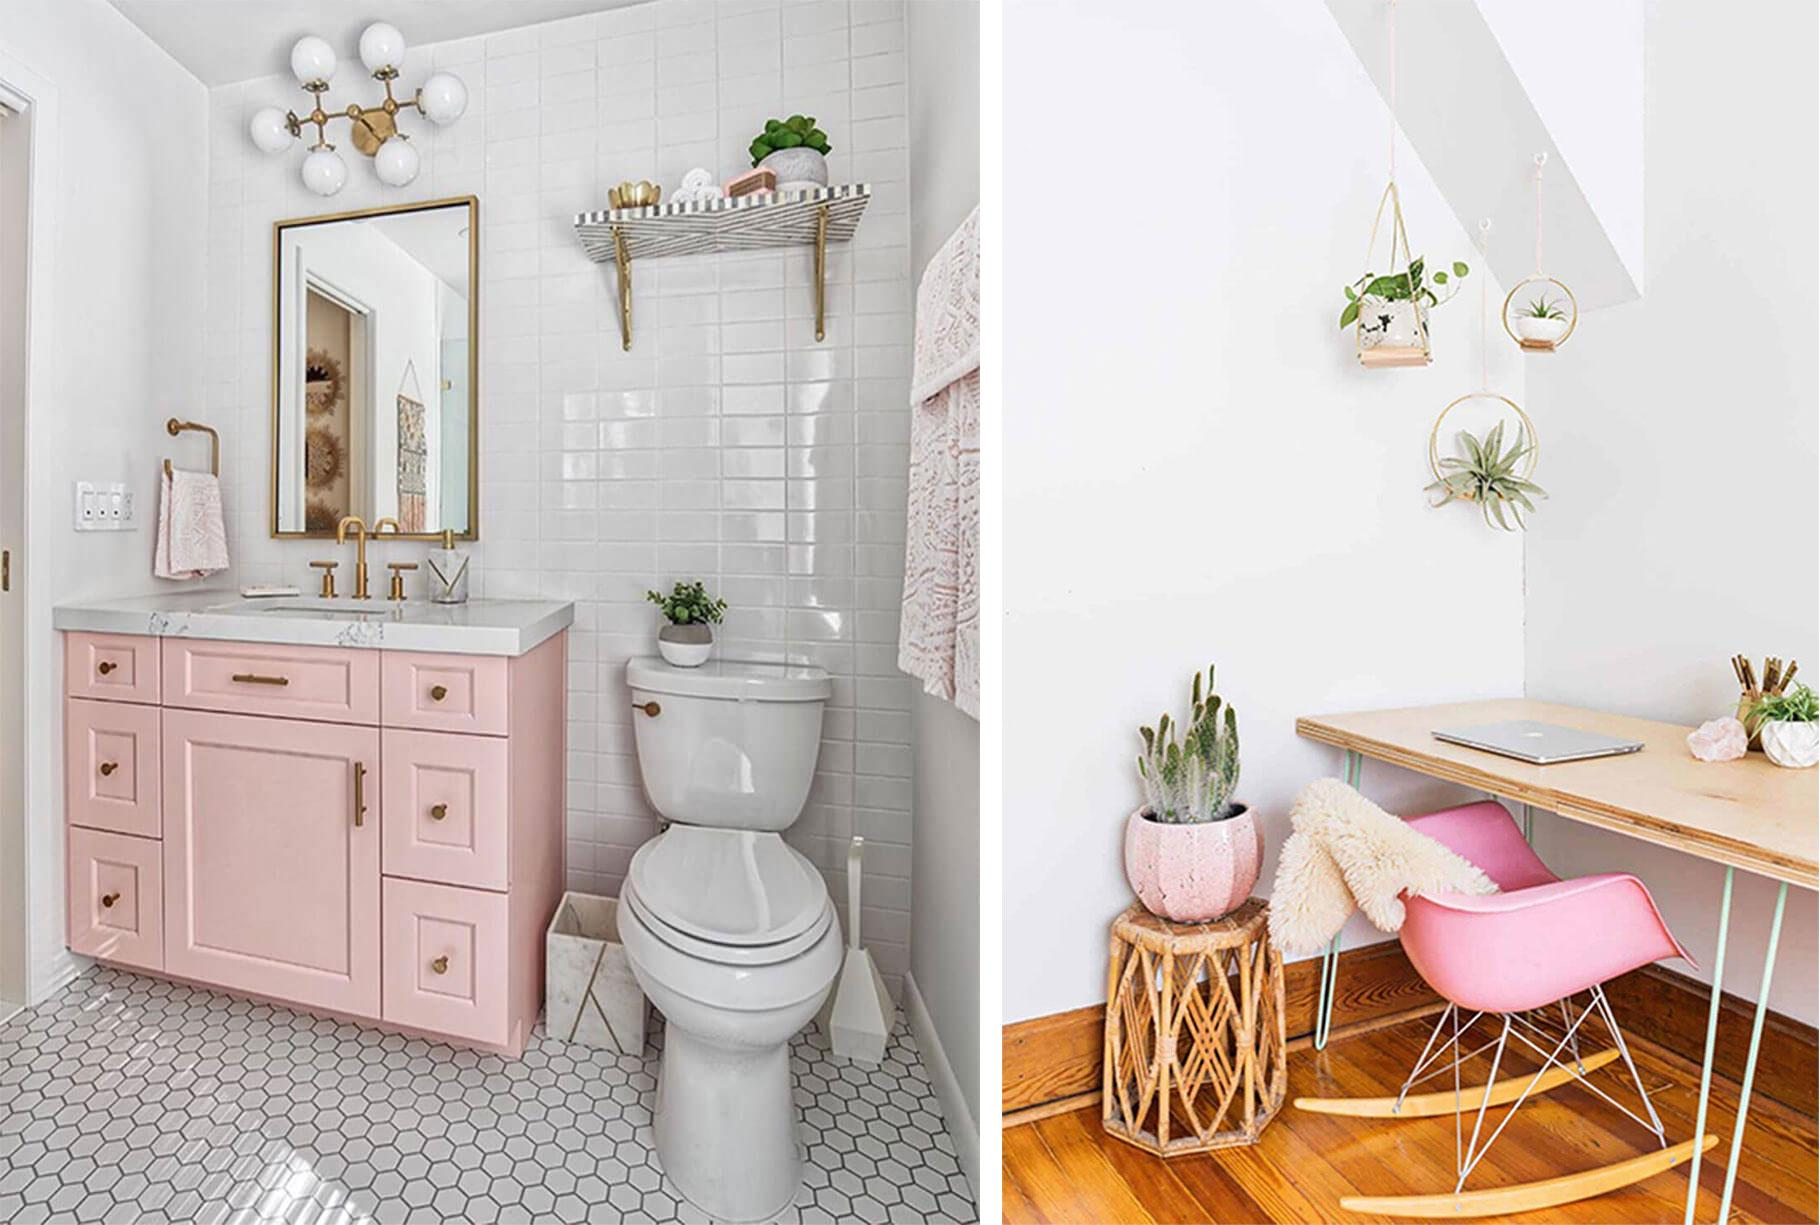 pastel pink cabinet in a modern bathroom, a pink rocking chair in a bohemian home office